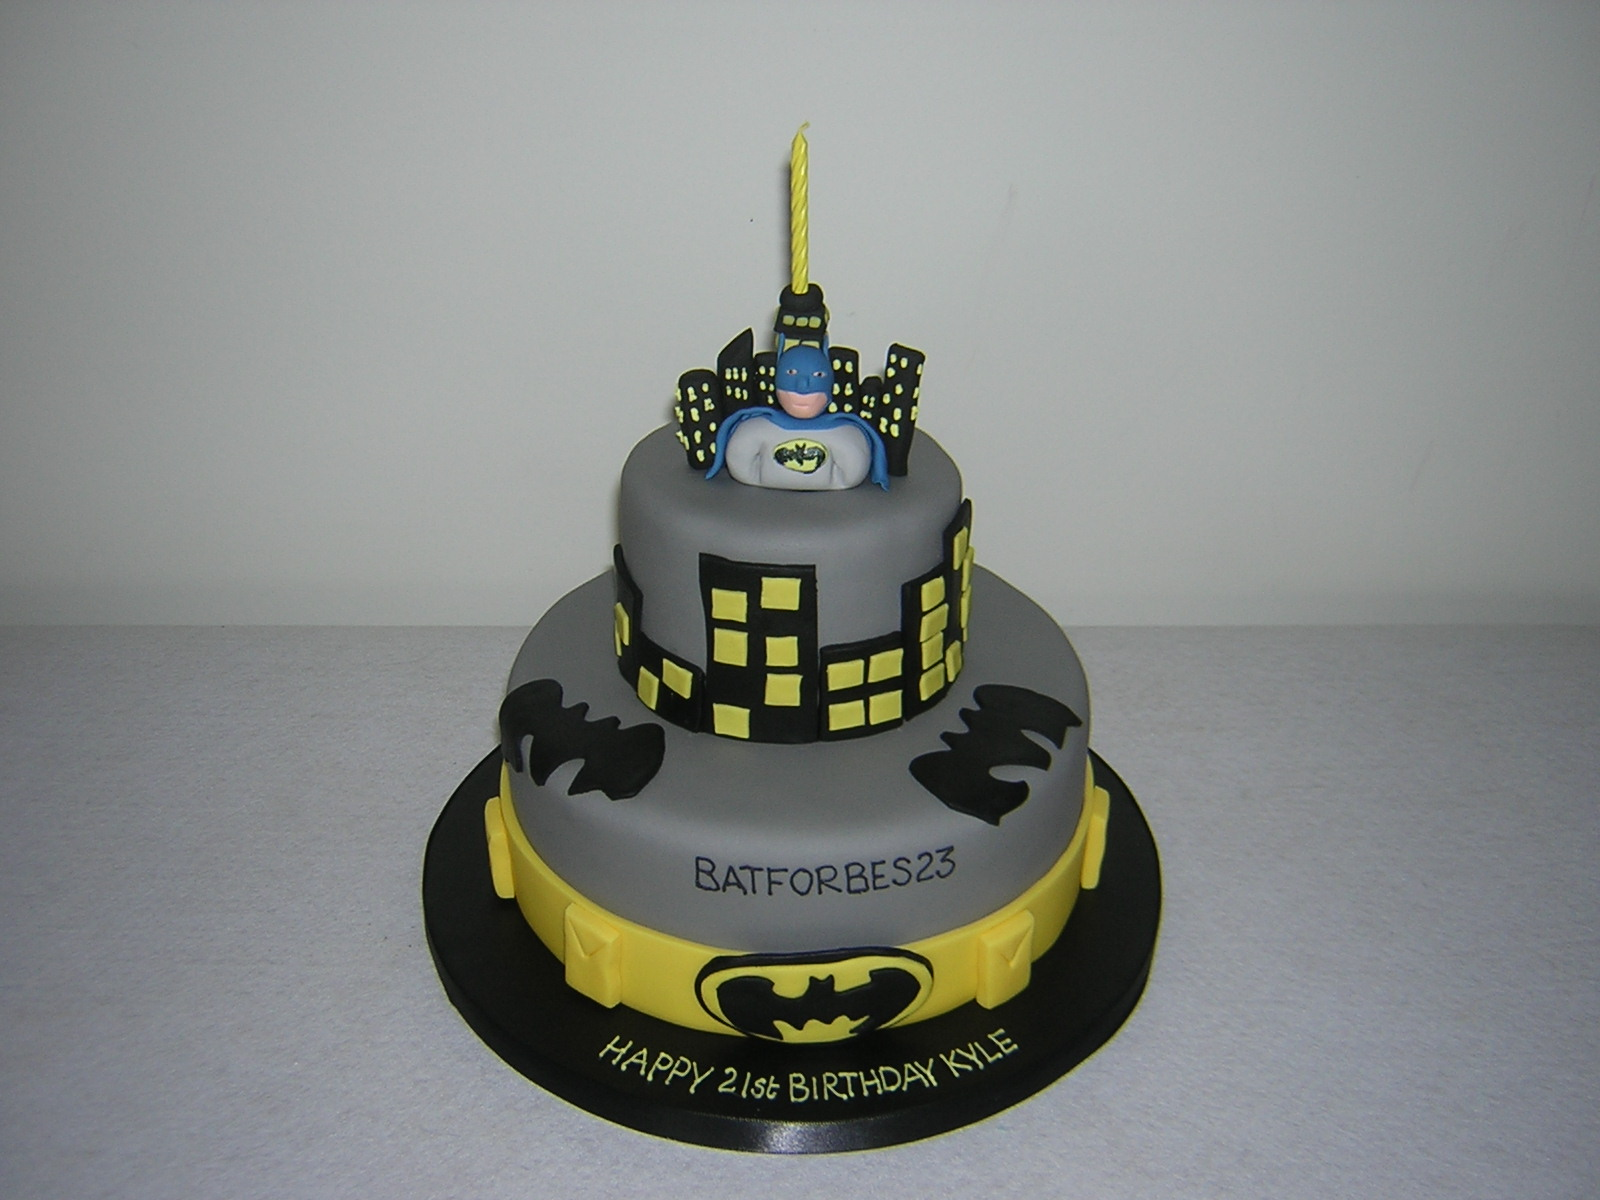 Index of /wp-content/gallery/birthday-cakes-18th-amp-21st